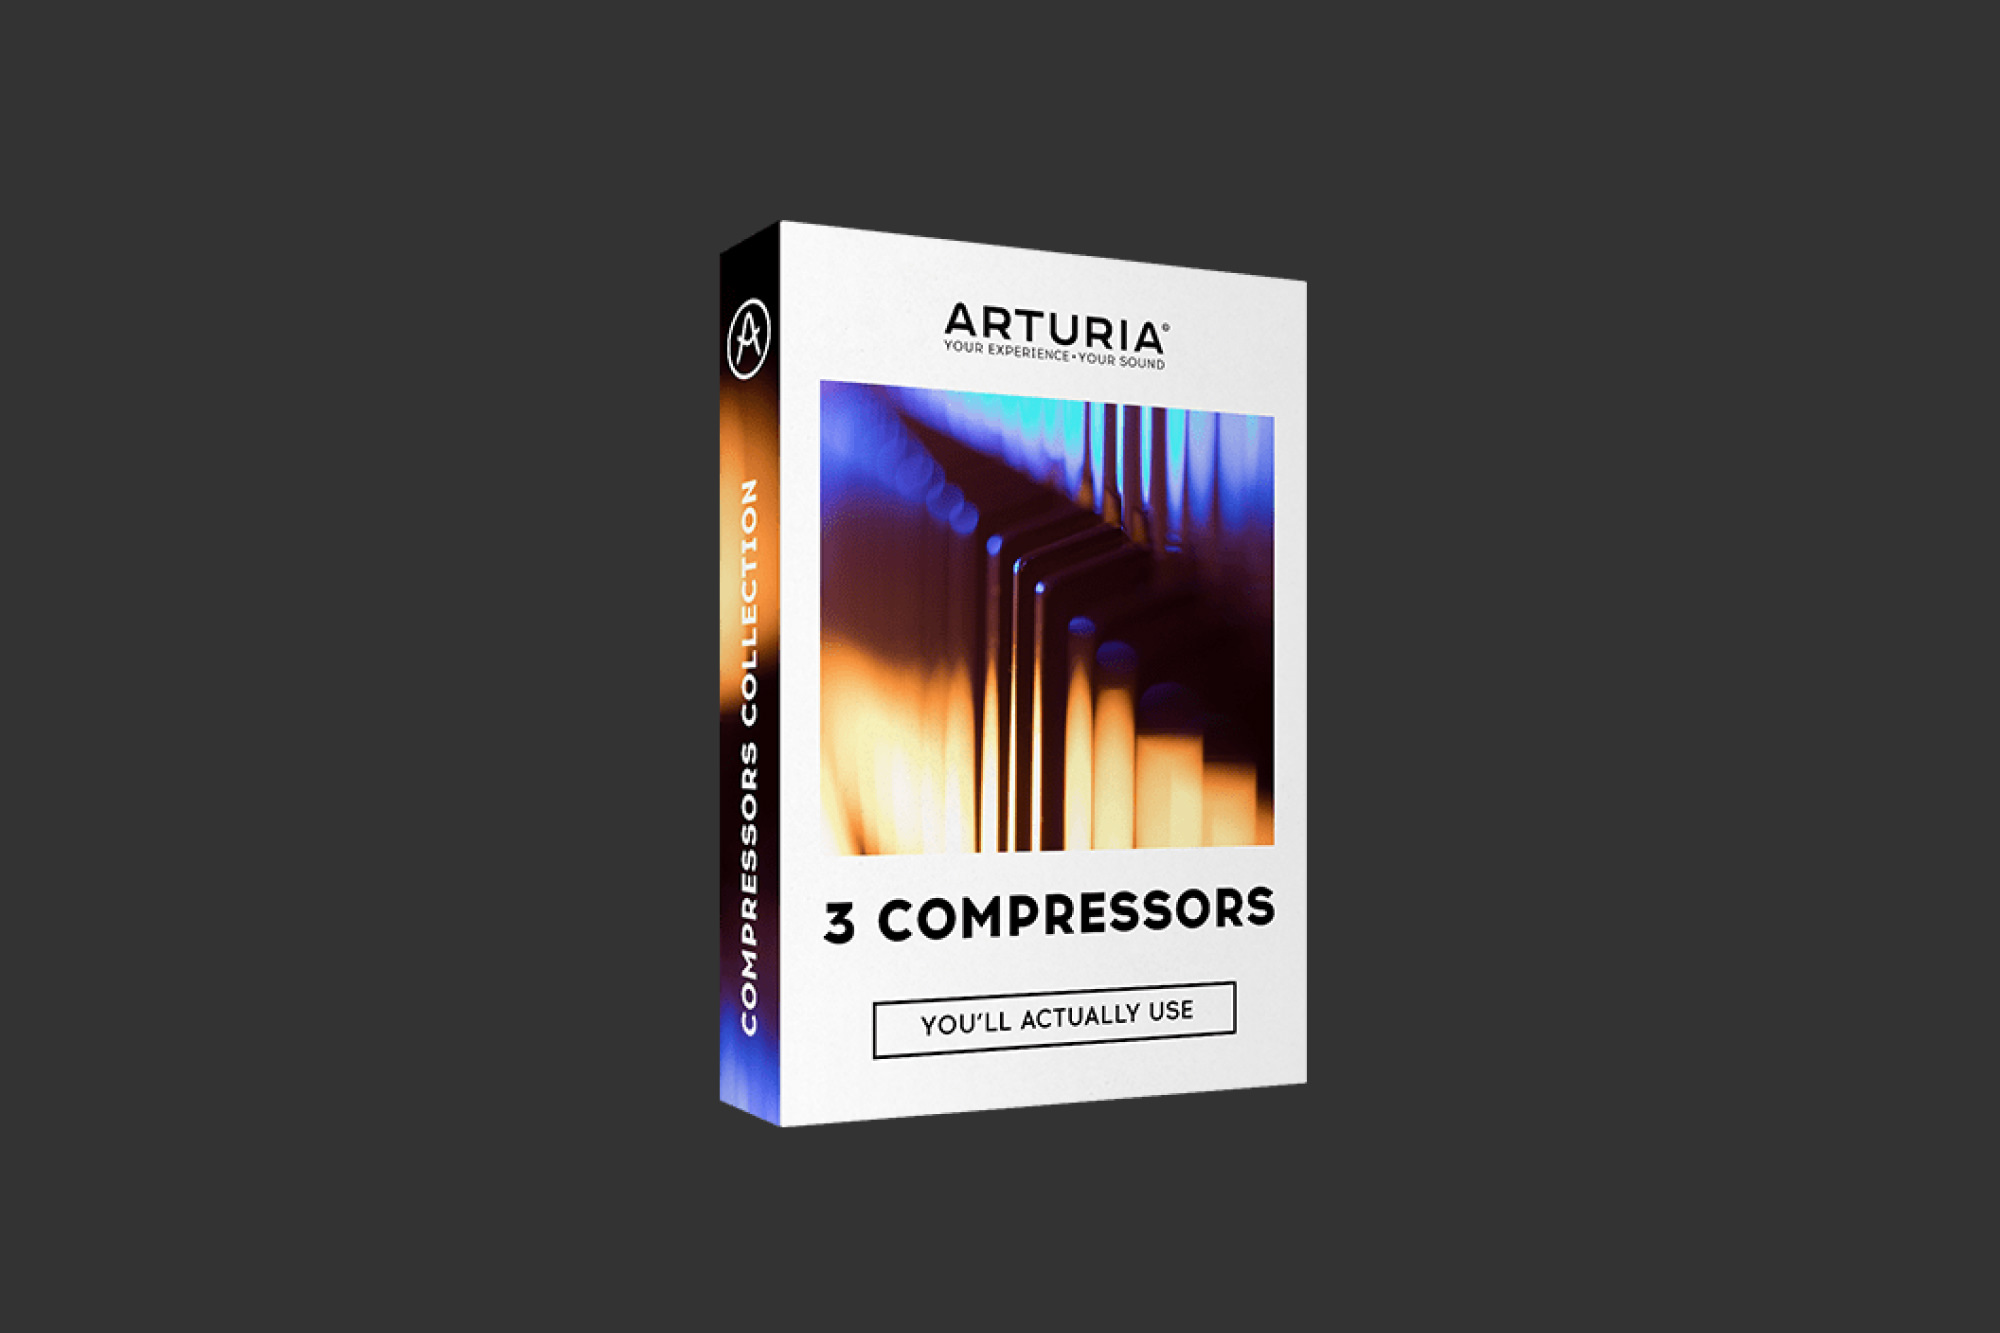 An image of the Arturia 3 Compressors.